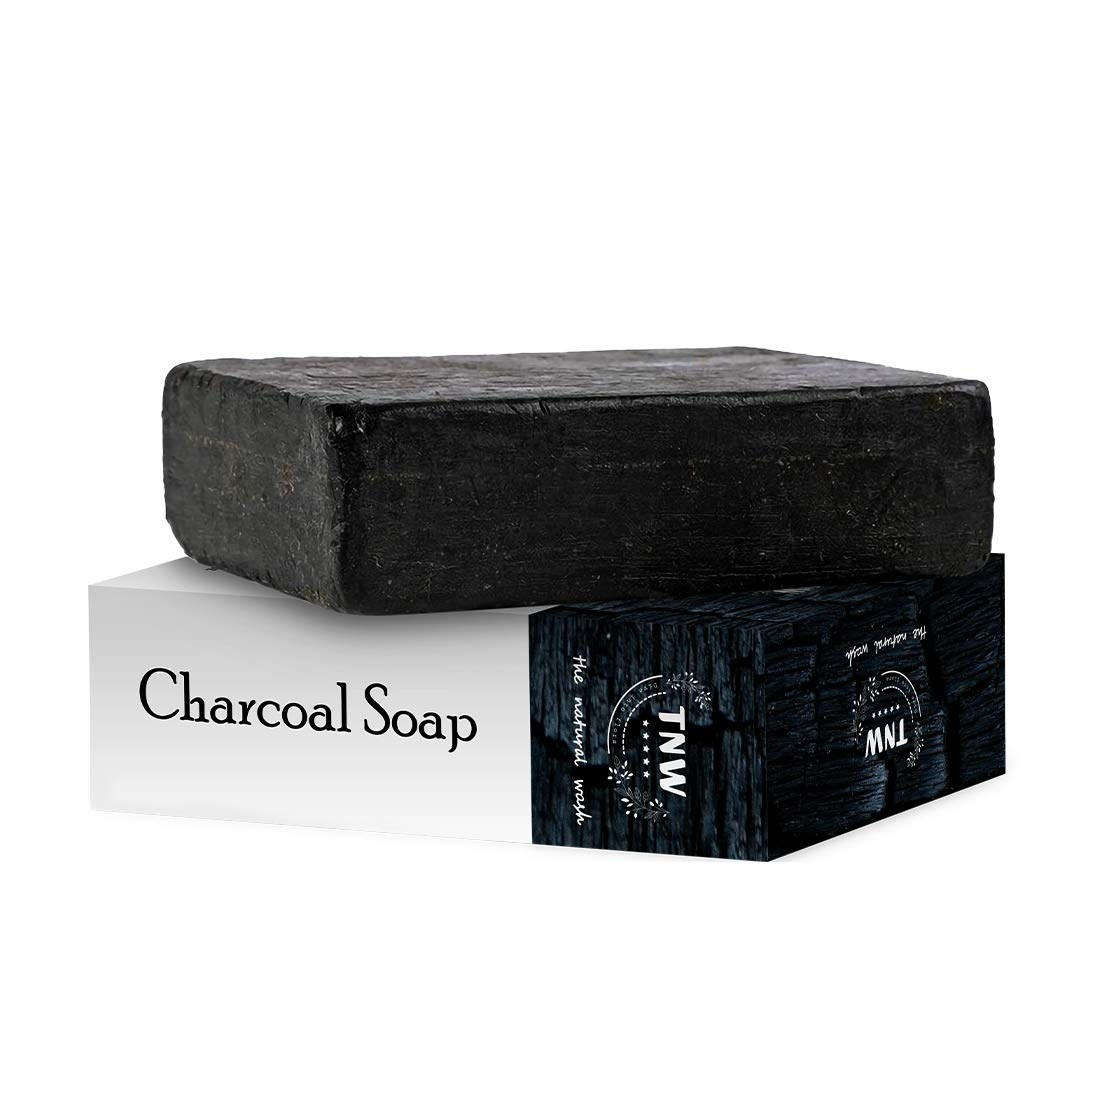 A black soap with black and white packaging.